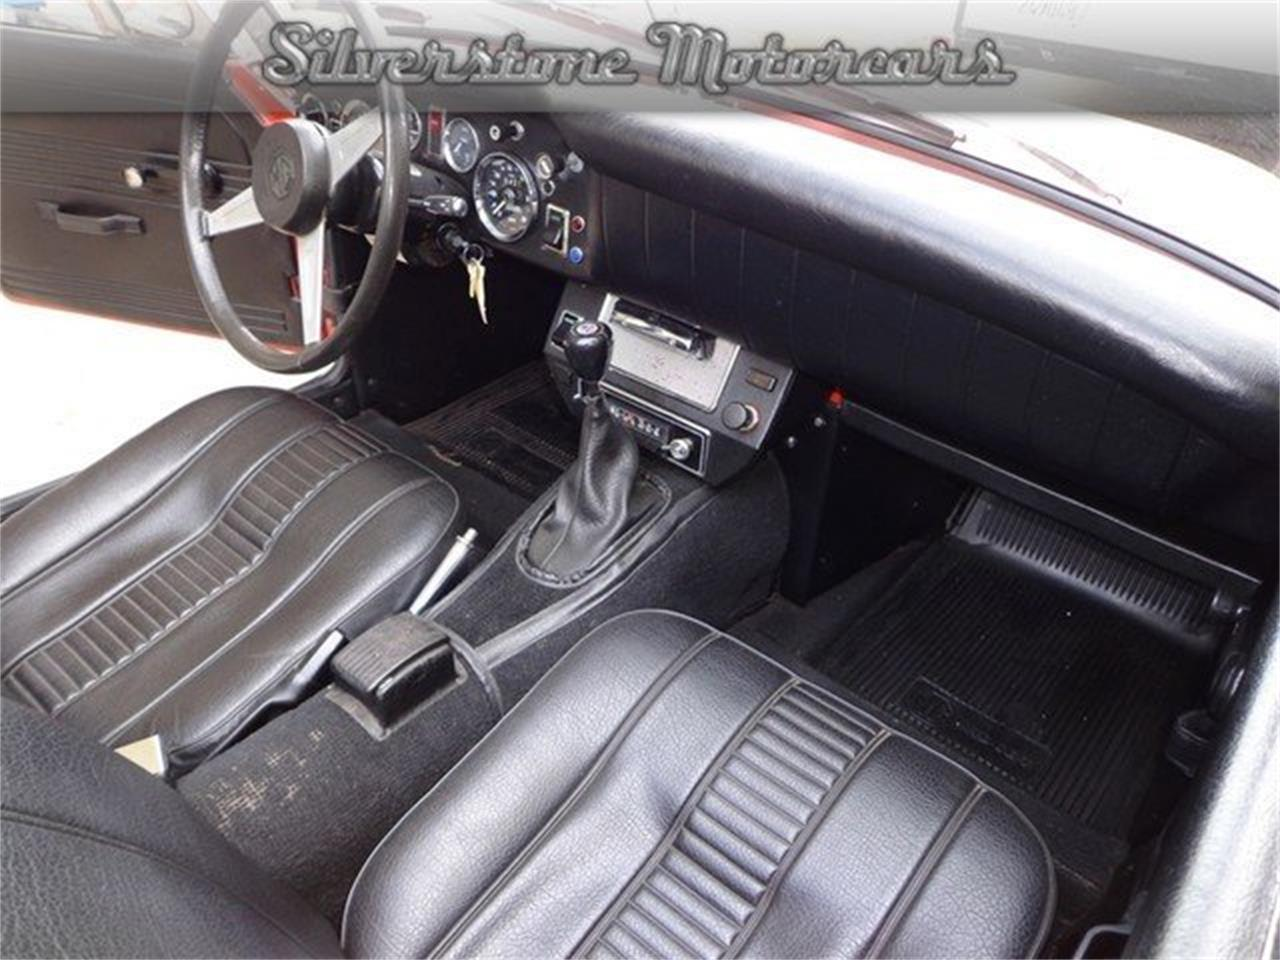 Large Picture of '76 MG Midget located in Massachusetts Offered by Silverstone Motorcars - F8K7